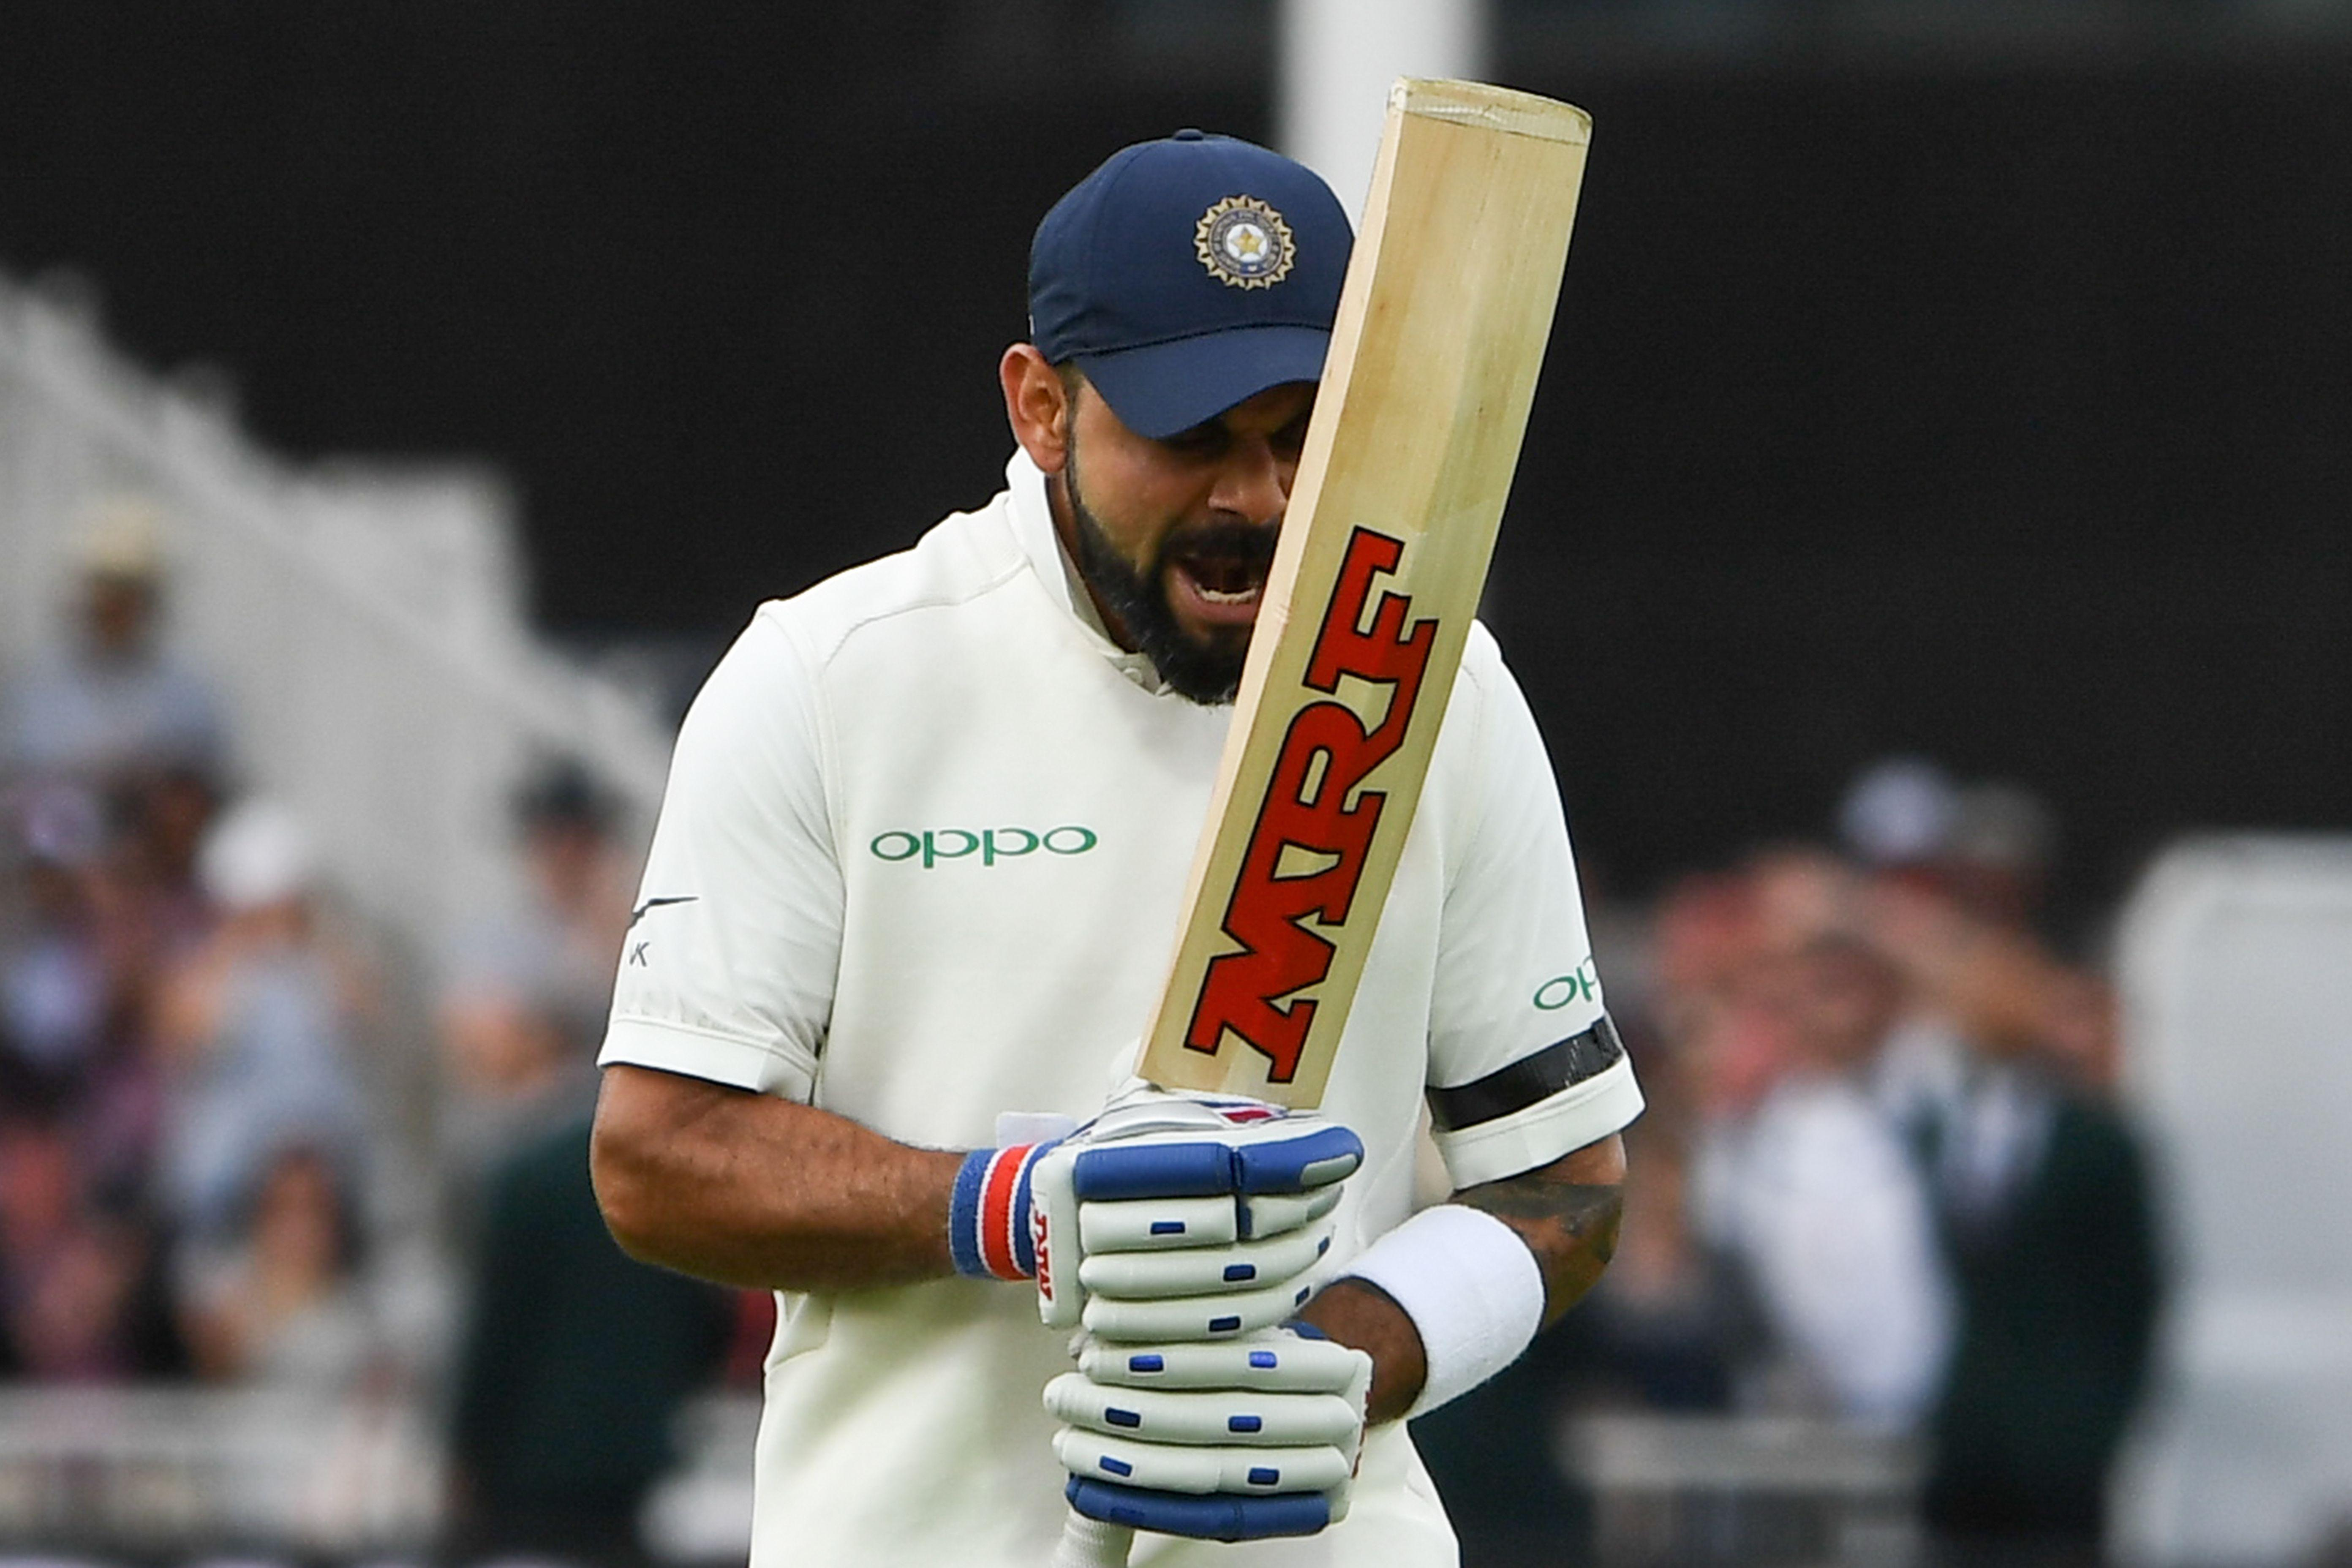 Kohli berates himself after being caught off the bowling of Adil Rashid three short of his century